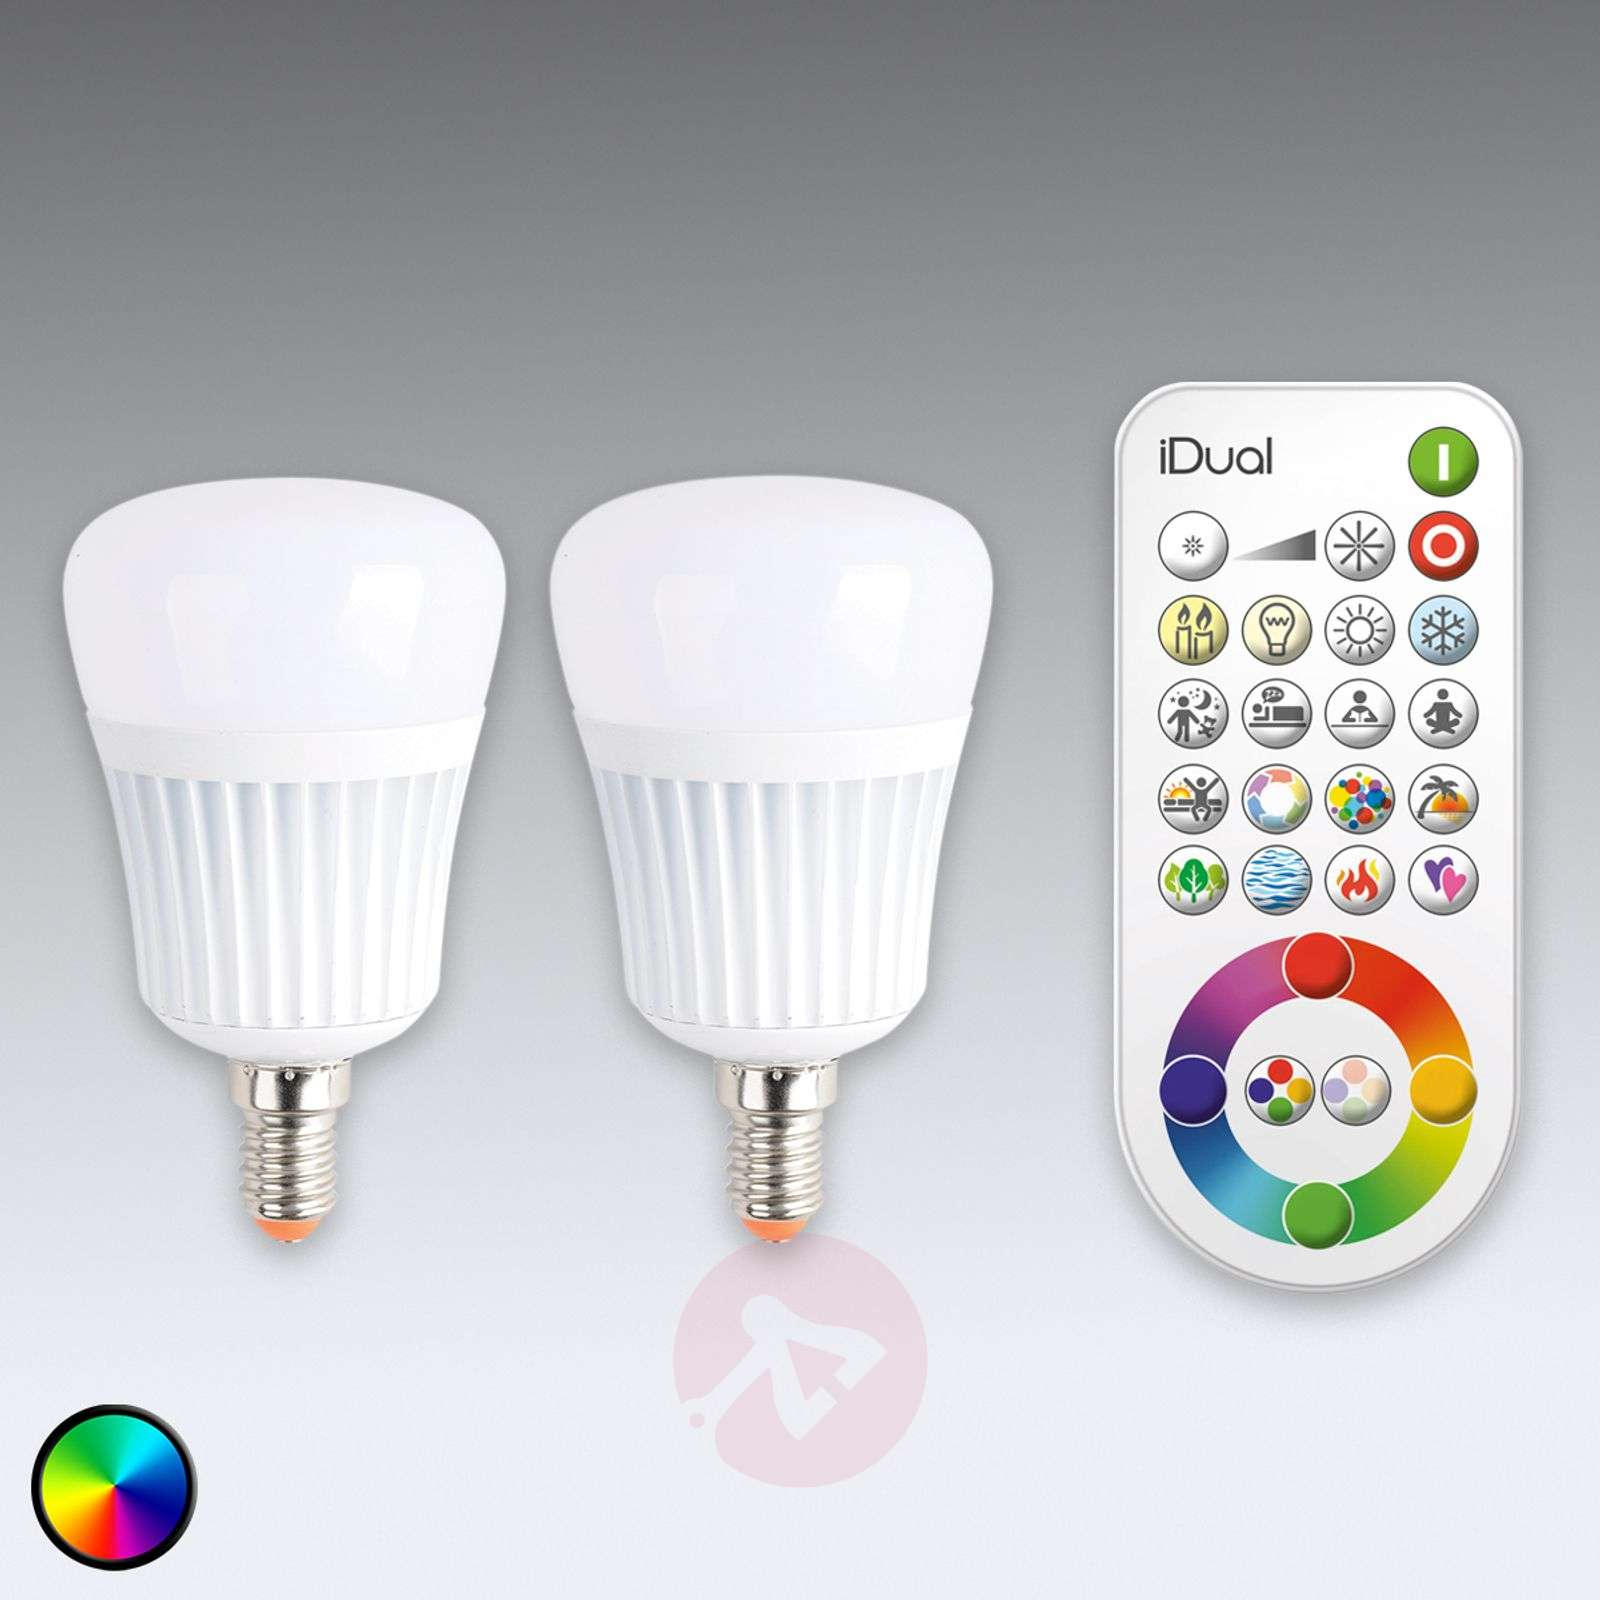 idual e14 led lamp 2 pack zonder afstandsbediening 9038022 01